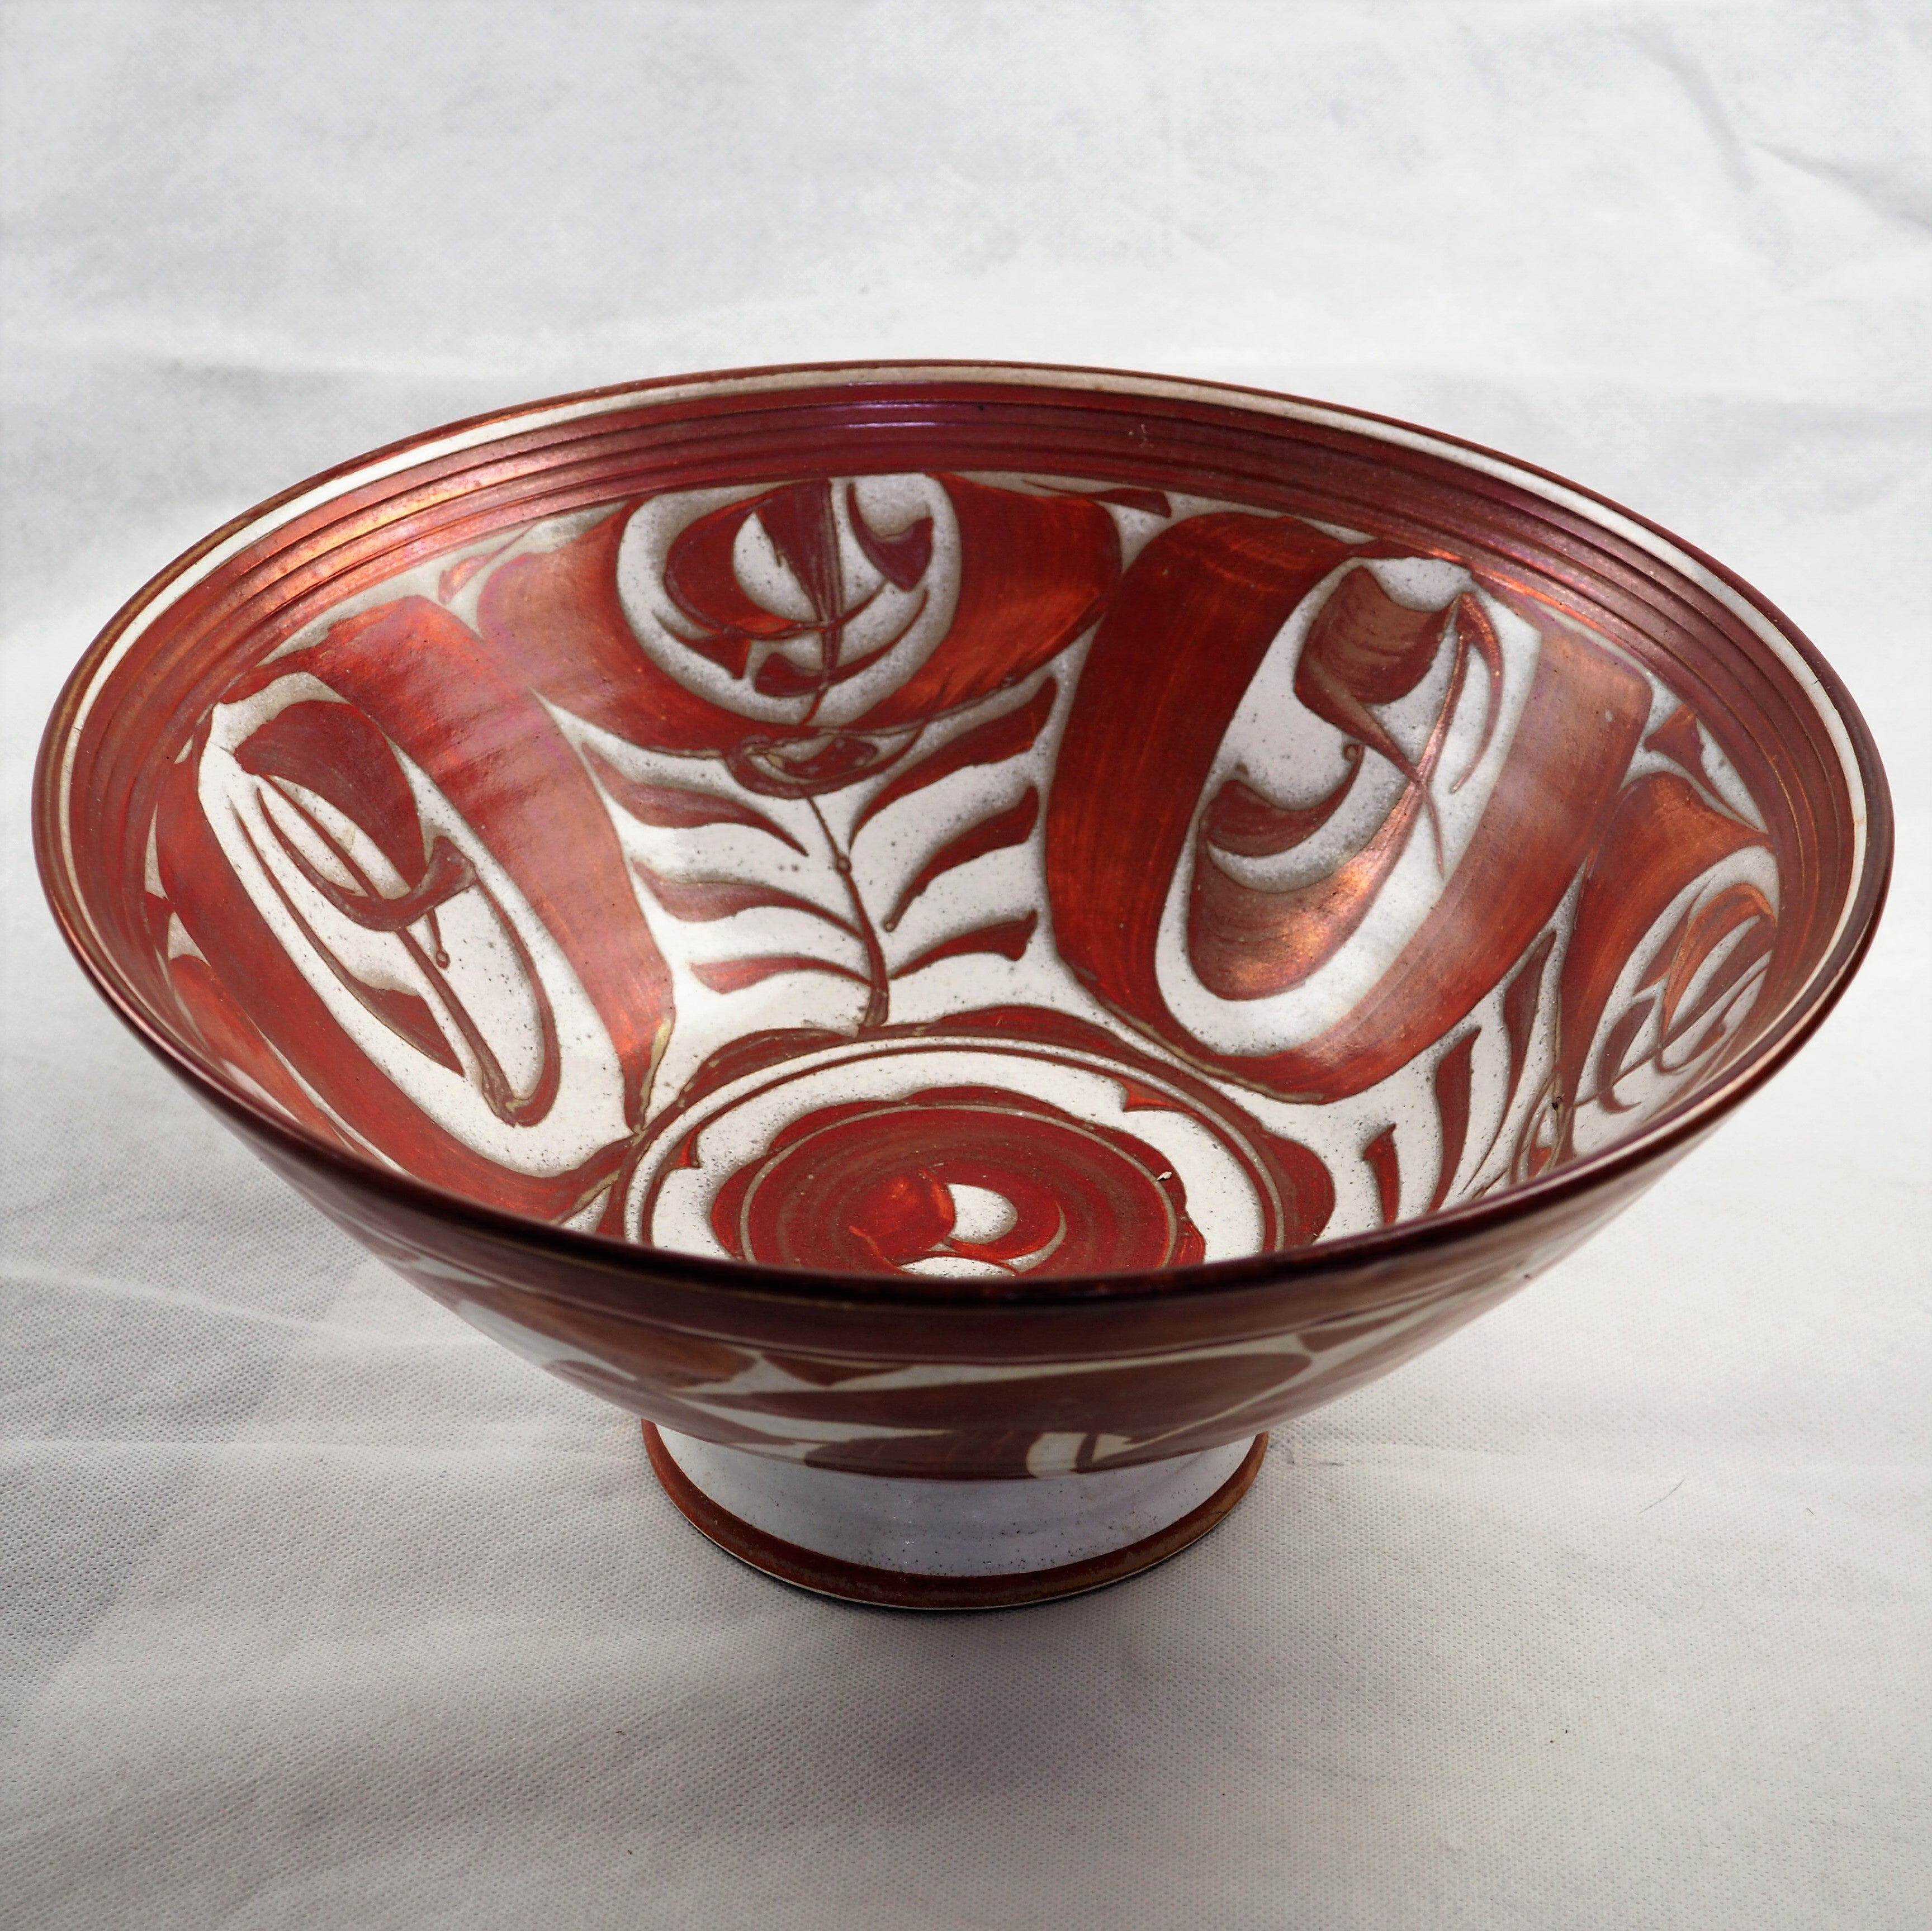 Caiger-Smith, Alan – Lustreware Handpainted Bowl | Alan Caiger-Smith | Primavera Gallery